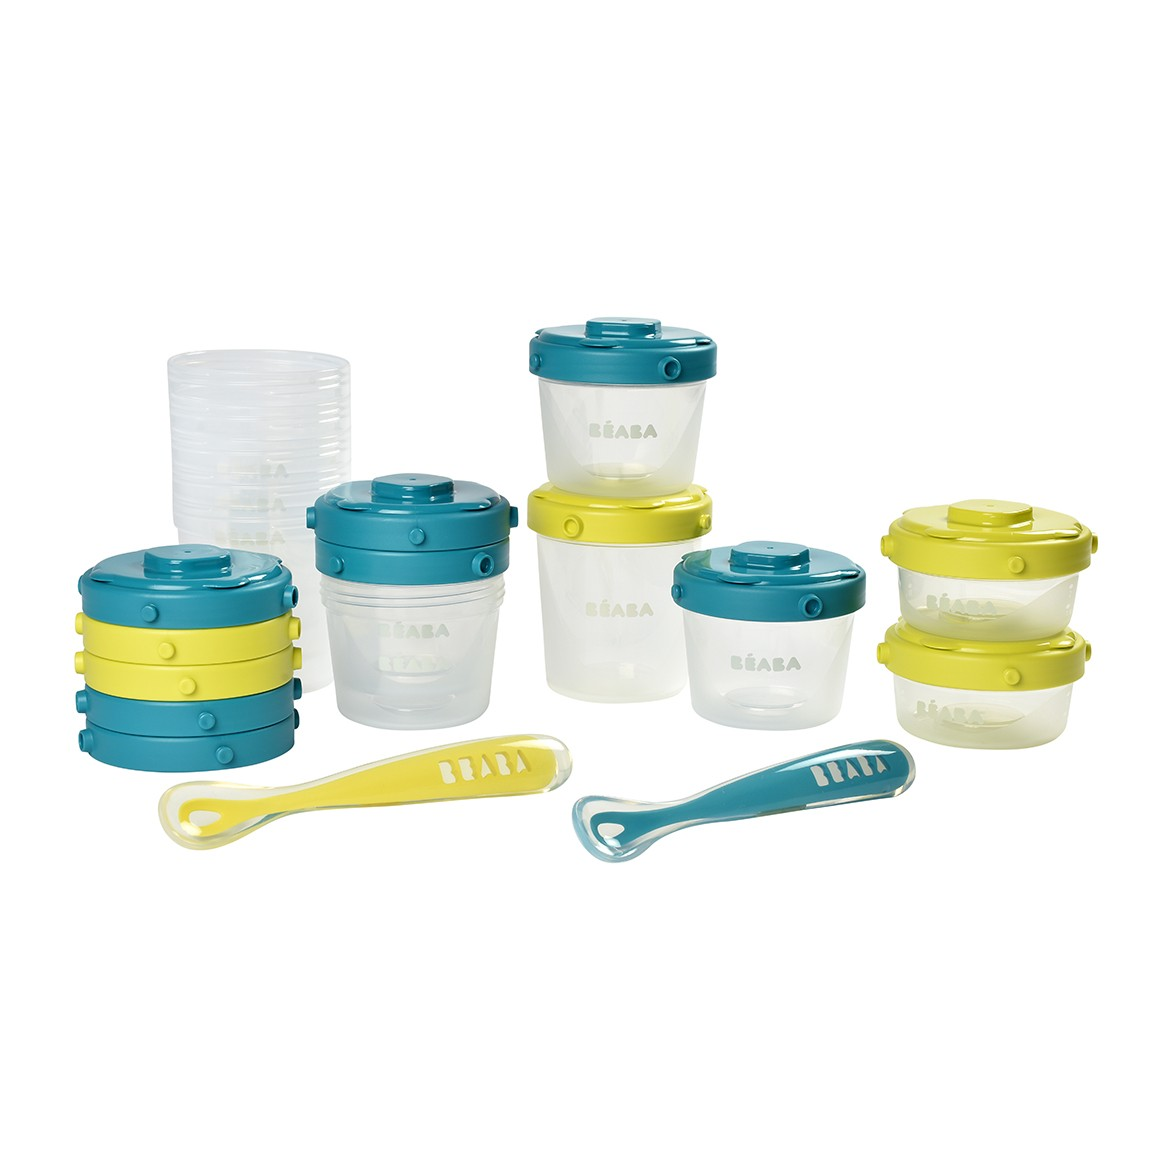 Beaba 1st Meal Set (Set of portions clip+1st age silicone spoon) - Neon/Blue